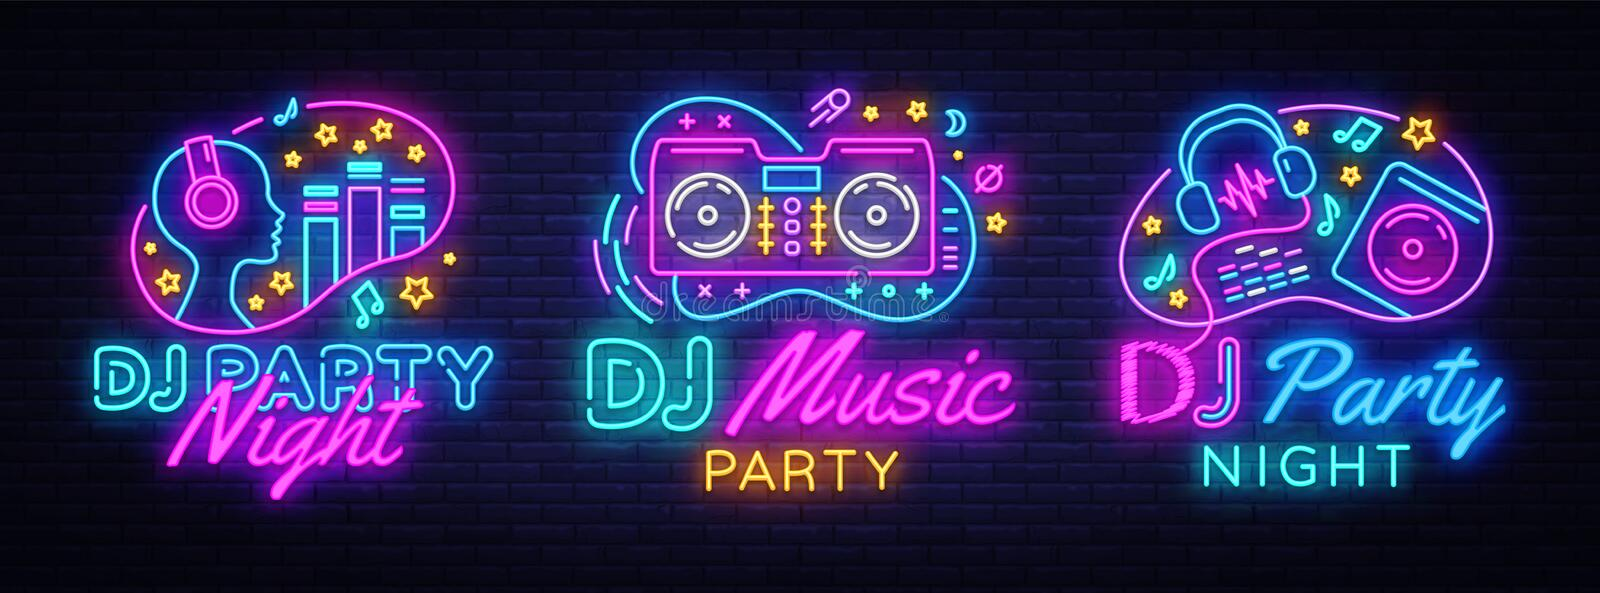 DJ Music Party neon sign collection vector design template. DJ Concept of music, radio and live concert, neon poster. Light banner design element colorful stock illustration